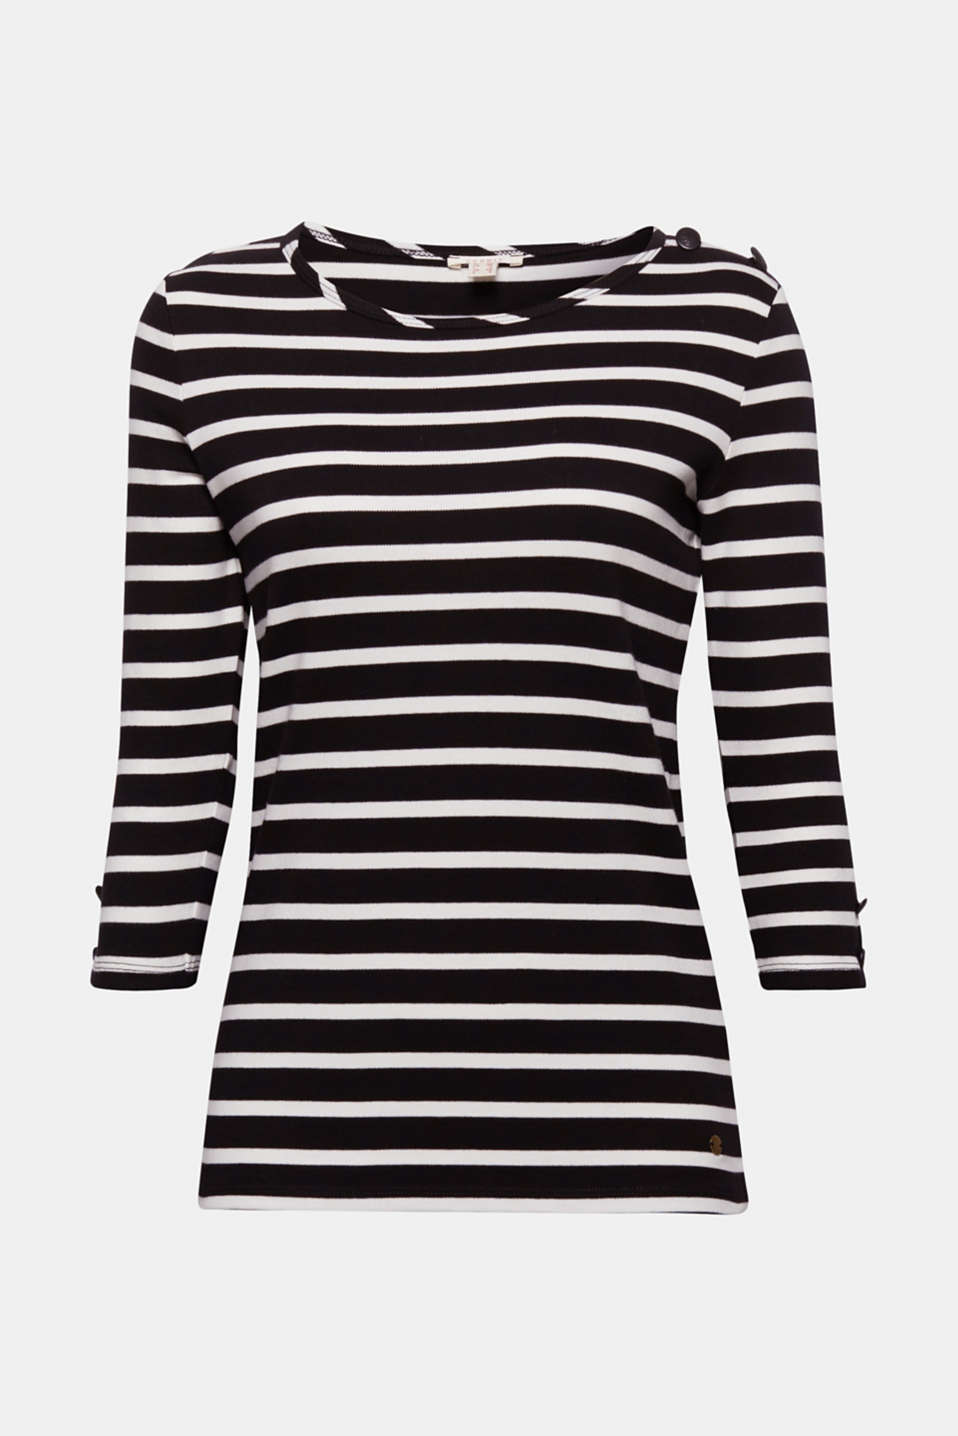 This super soft T-shirt with fashionable stripes and decorative crest buttons is a timeless classic!